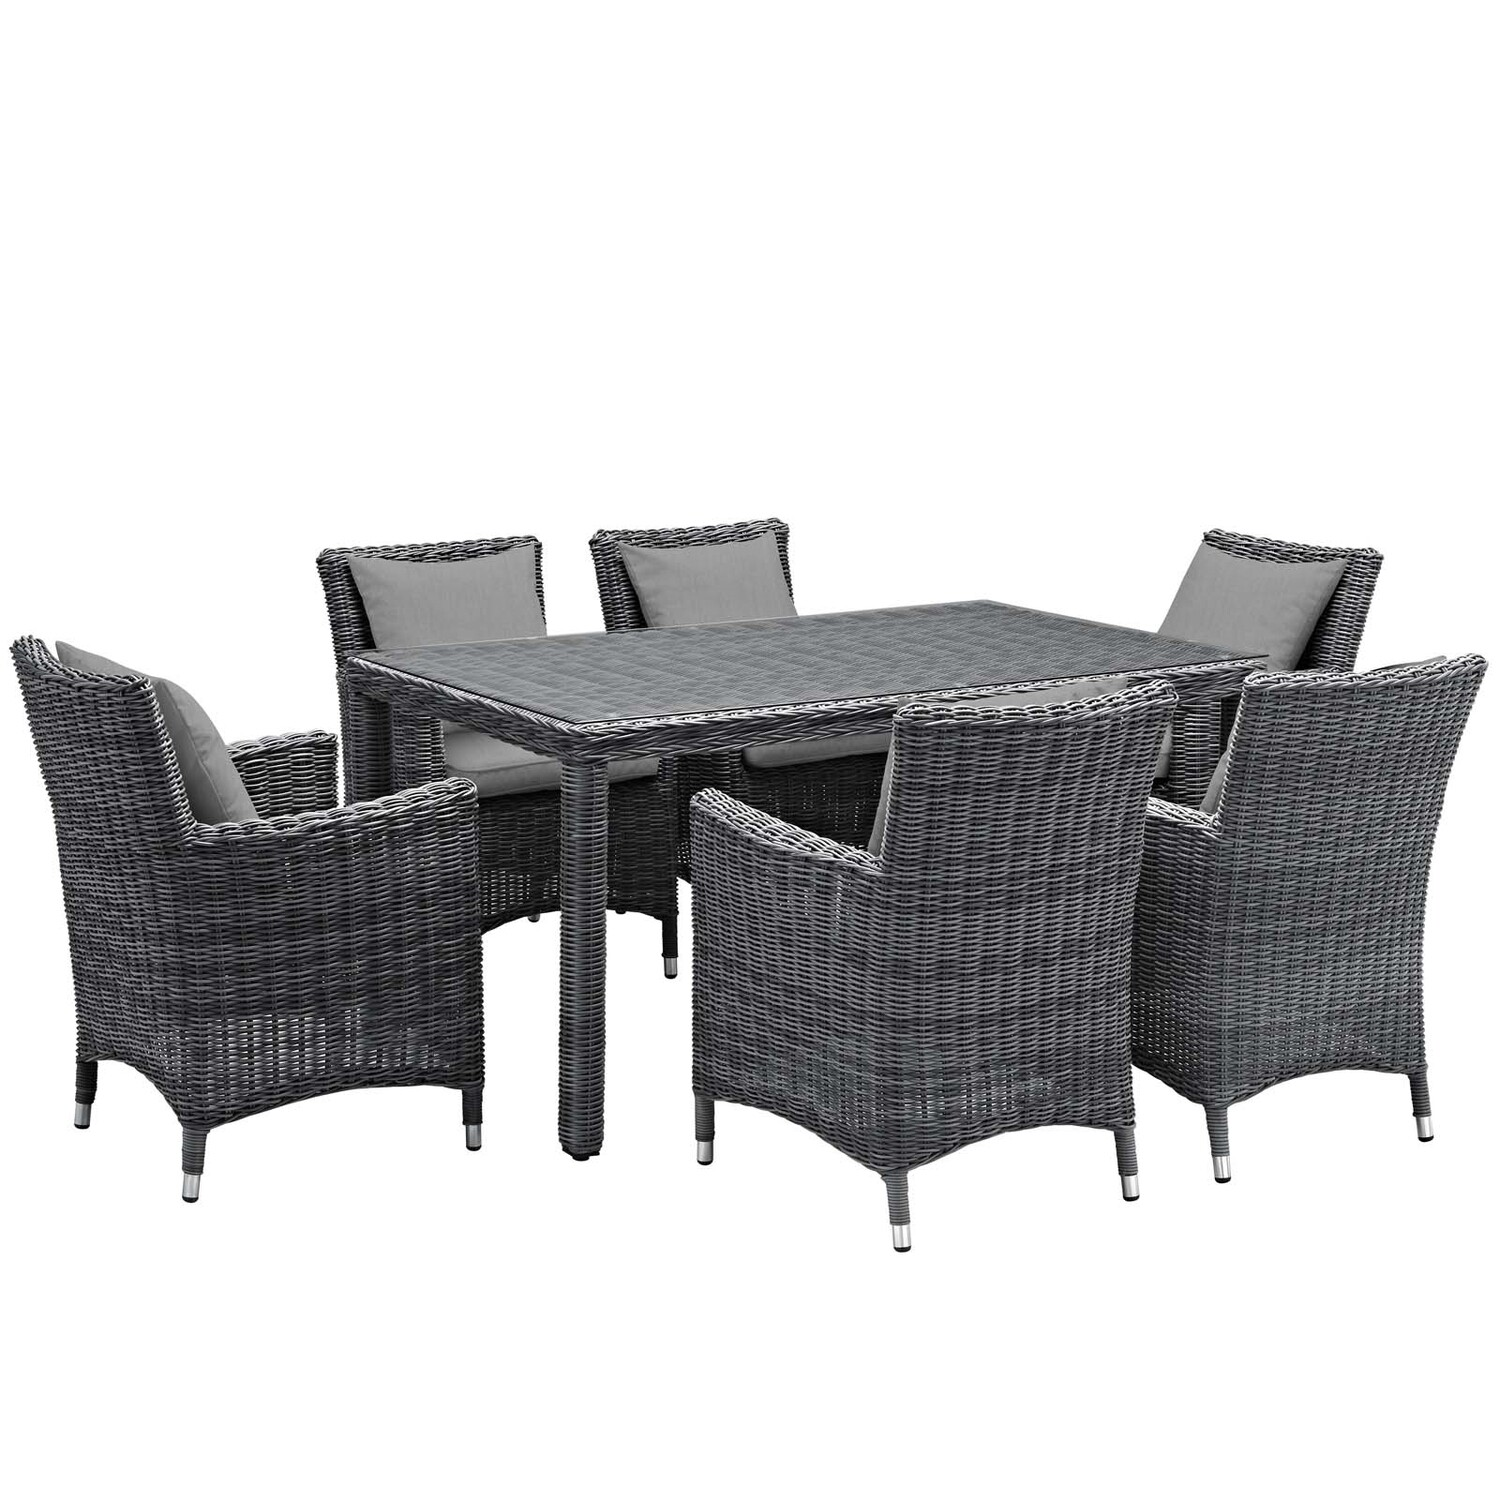 North Avenue 7 Piece Patio Rectangle Dining Set